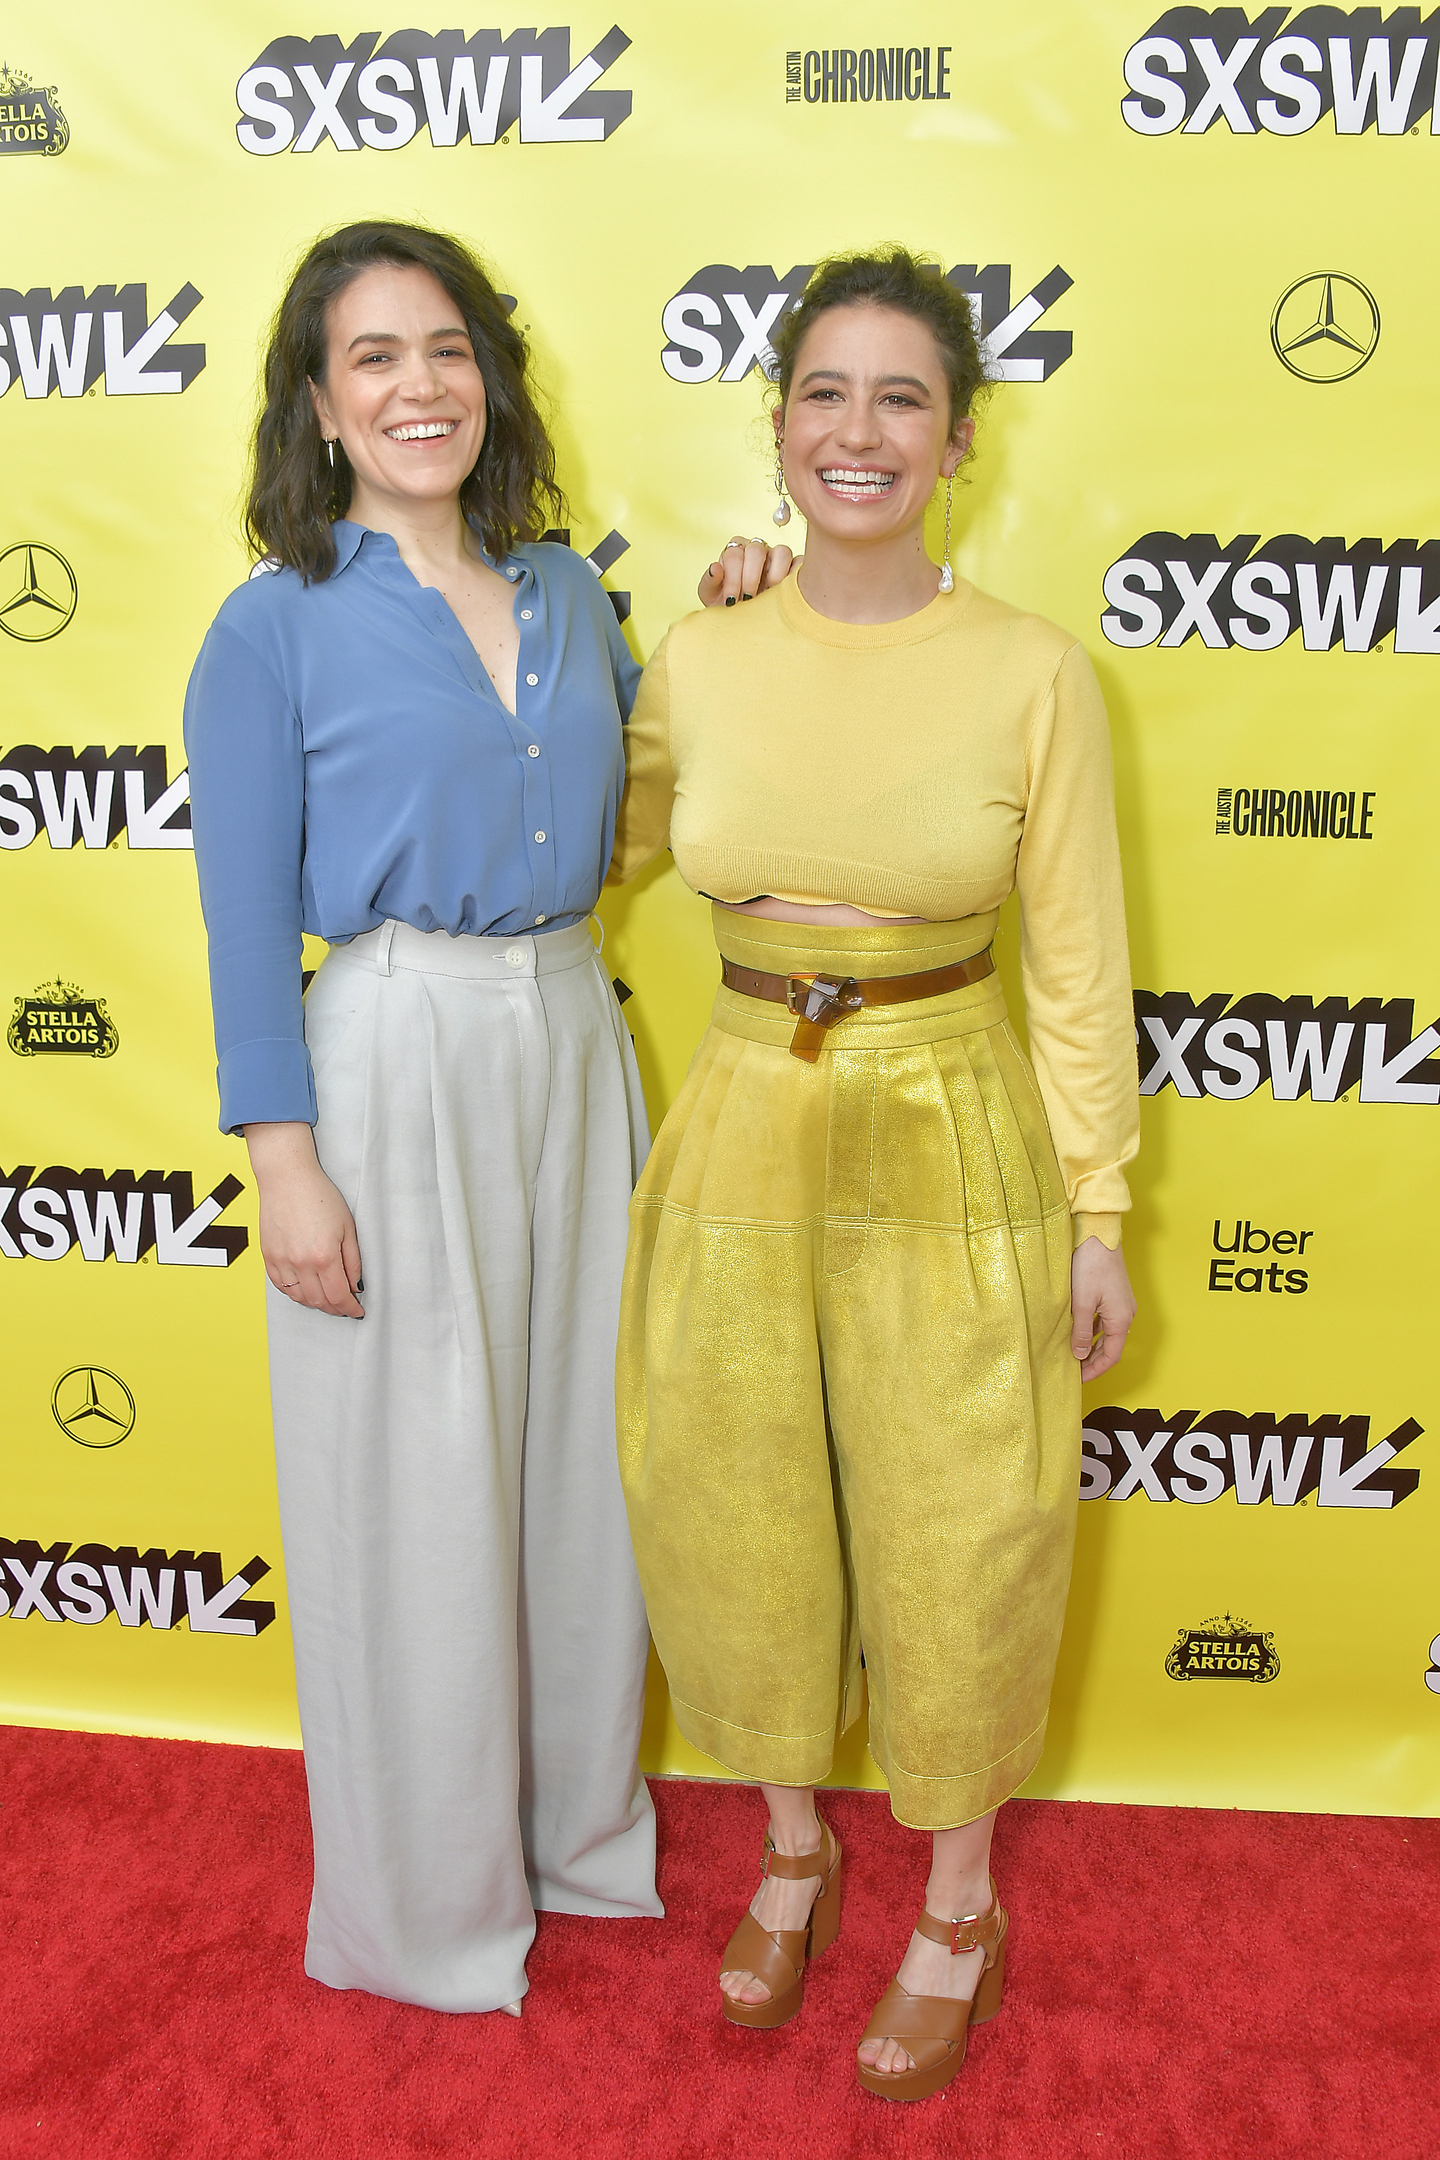 Actresses Ilana Glazer (L) and Abbi Jacobson attend the premiere of the Broad City series finale at the ZACH Theatre.